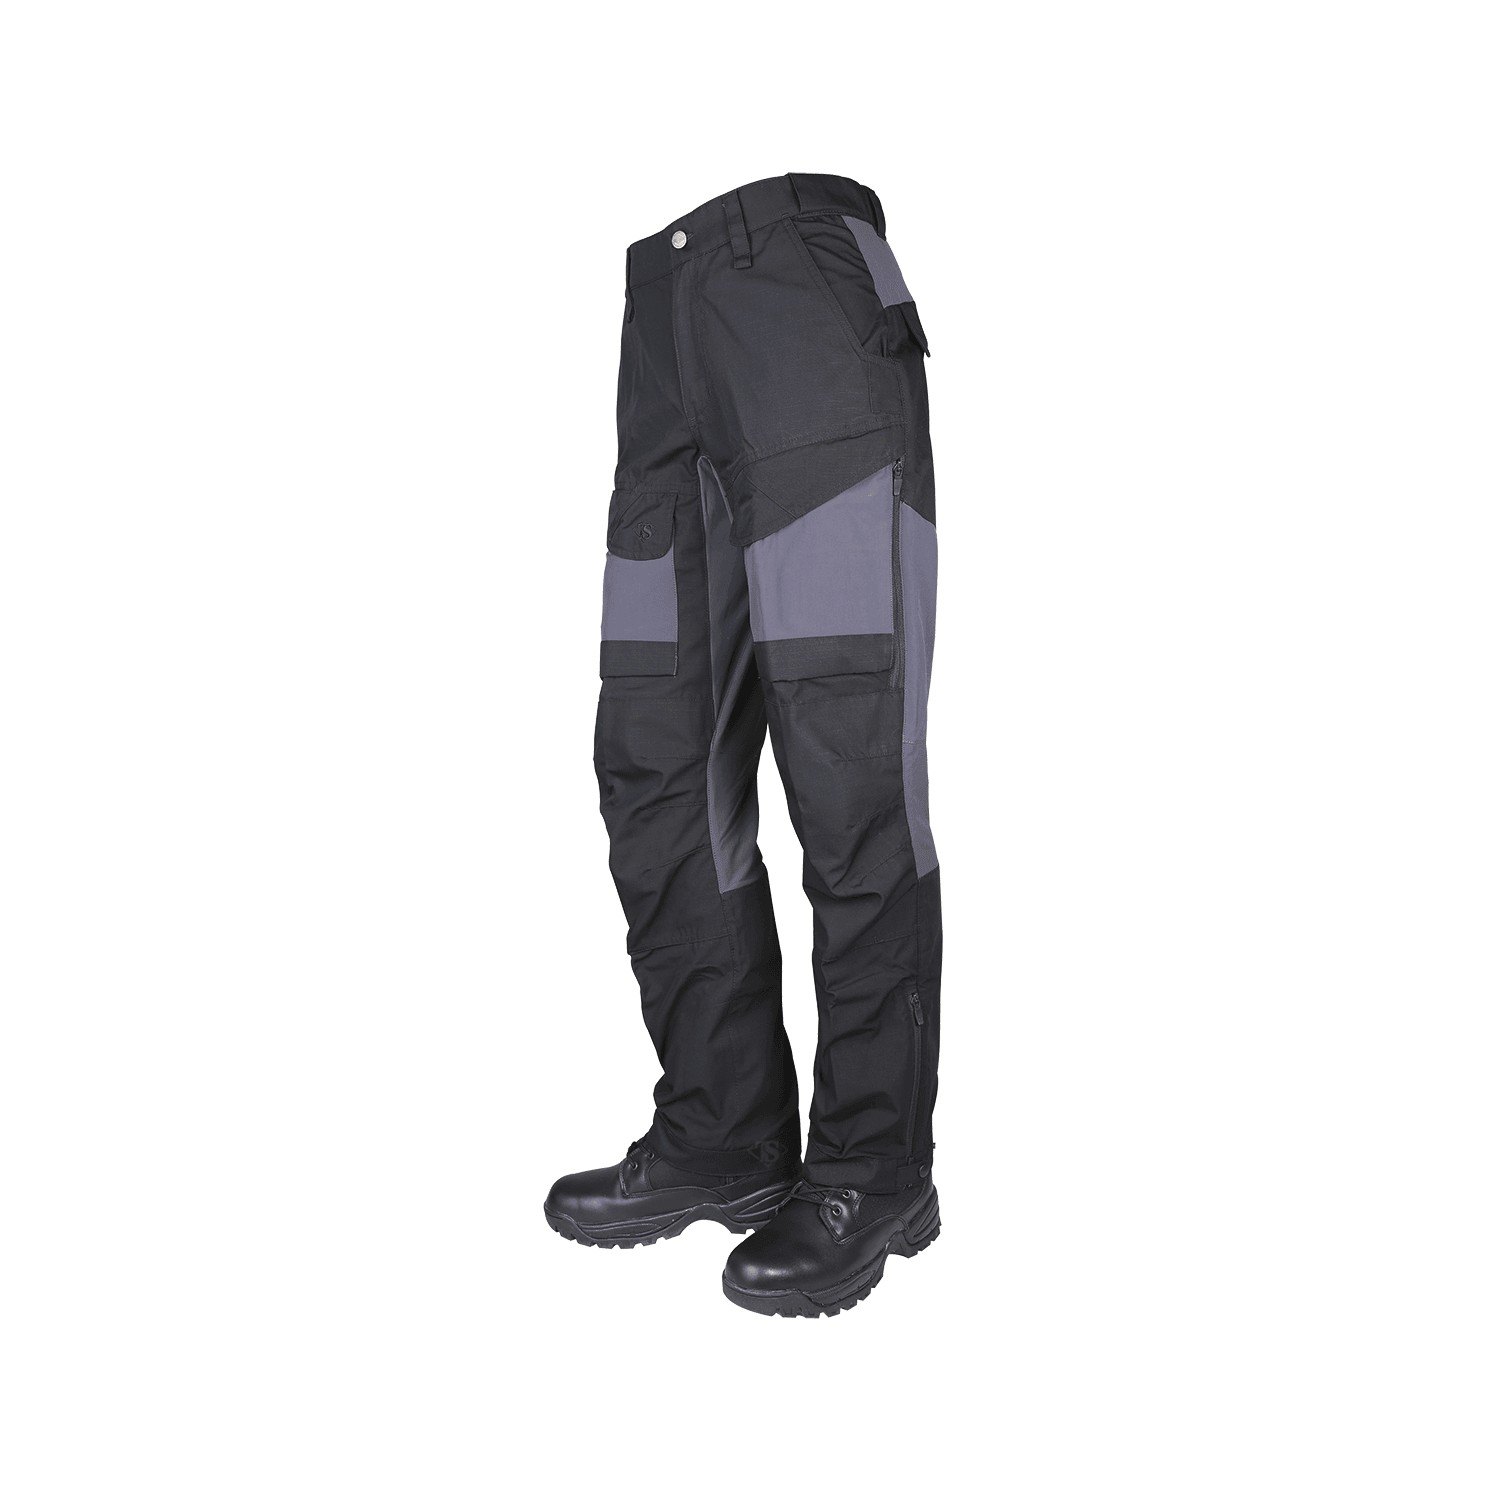 PANTALON 24-7 XPEDITION GRIS/NEGRO